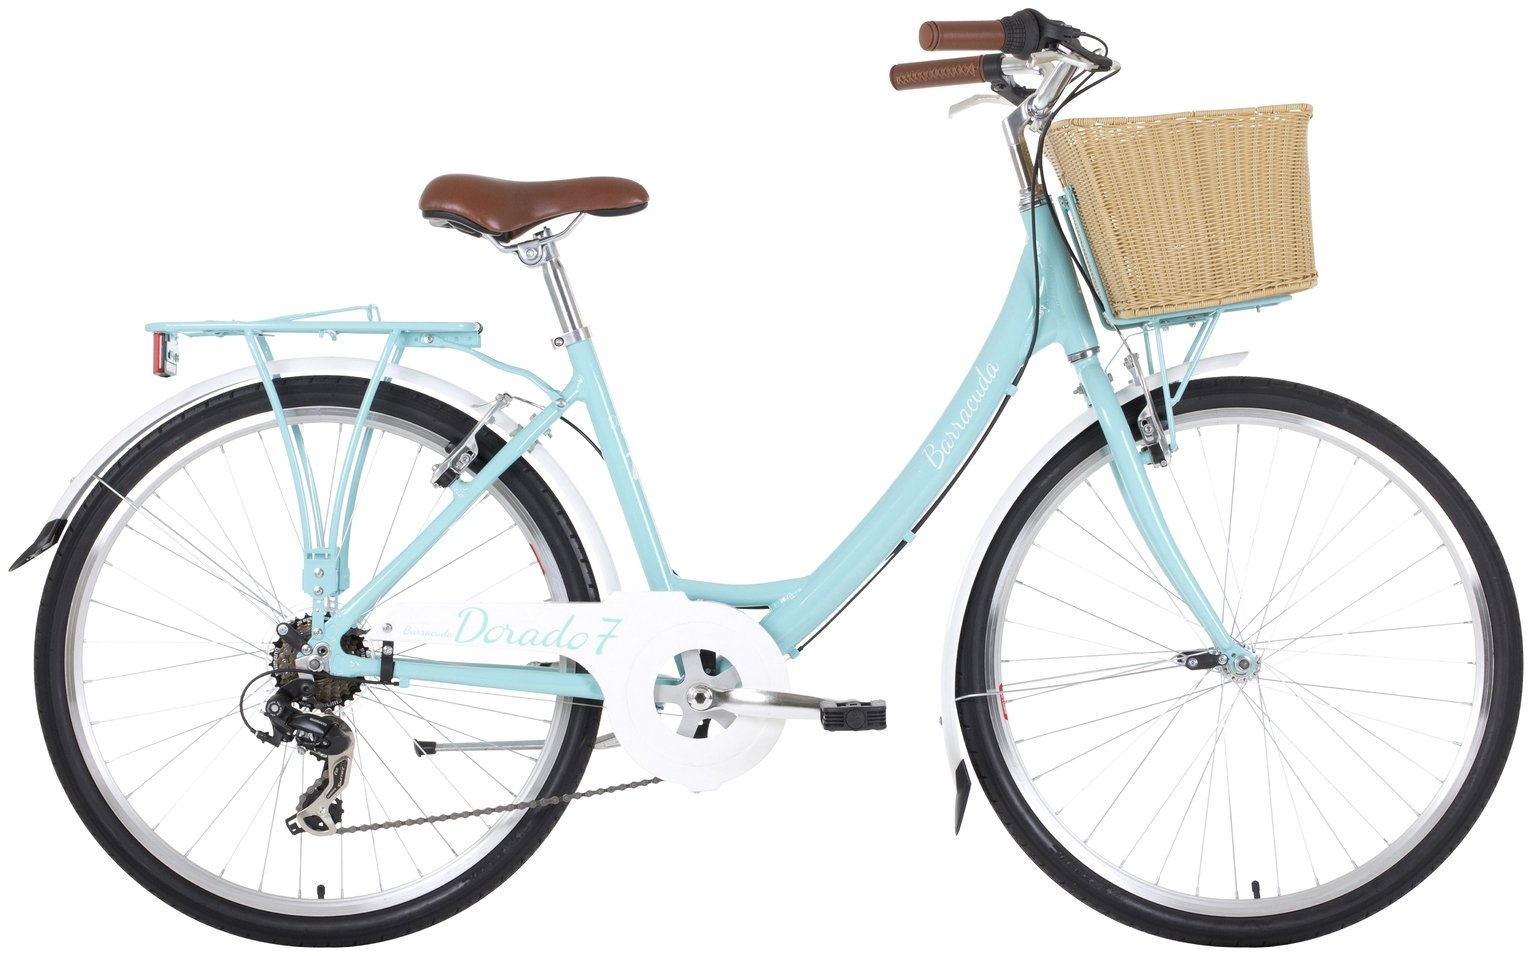 Image of Barracuda Dorado 7 14 inch Hybrid Bike - Adult's.